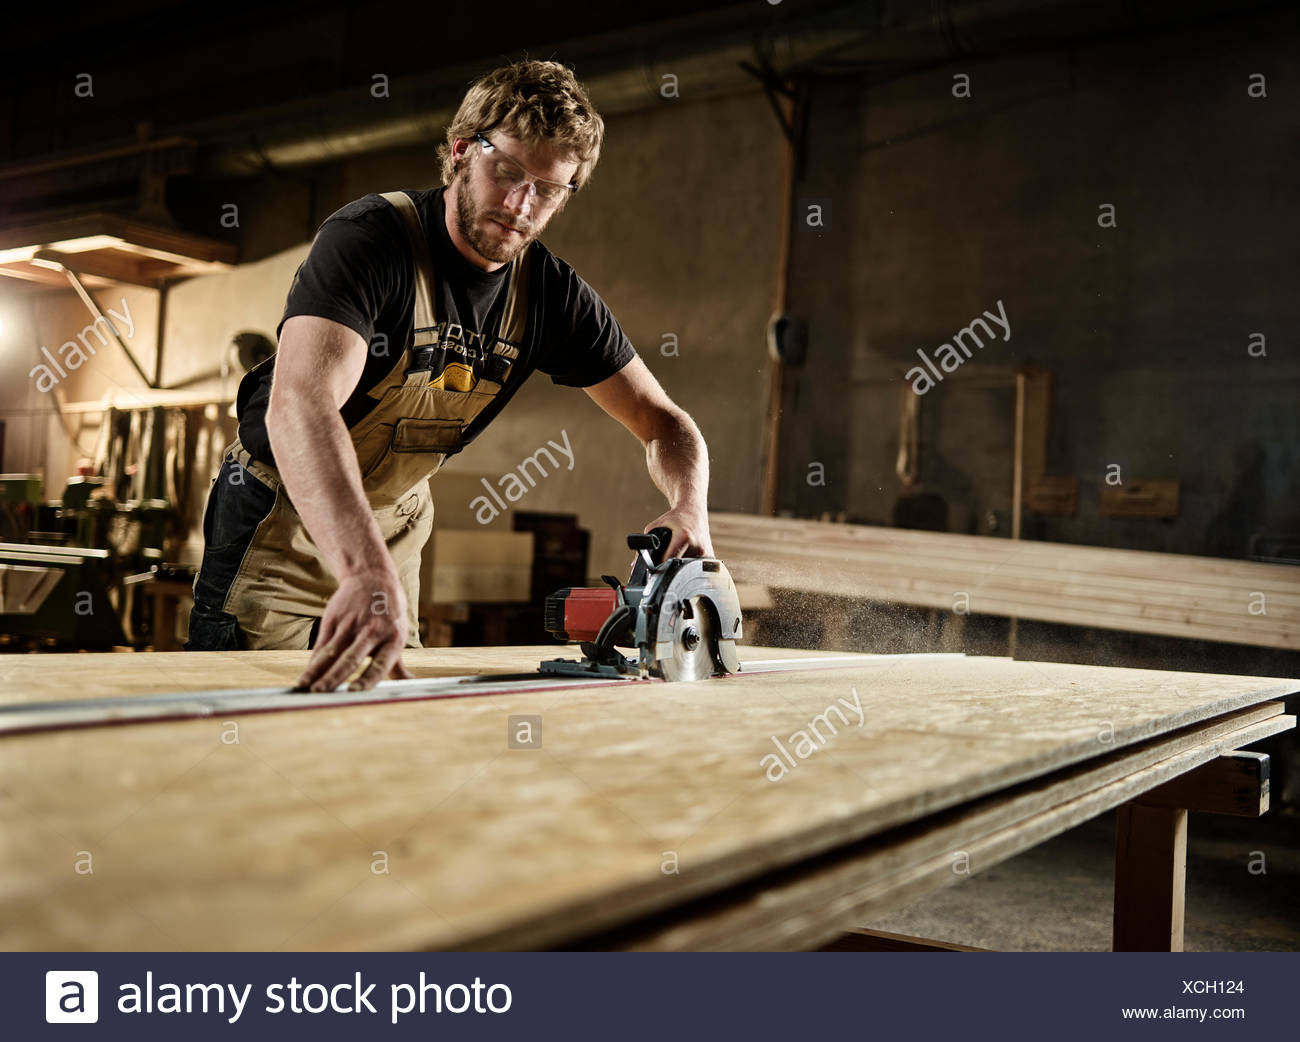 Carpenter cutting chipboard with a circular saw, Austria - Stock Image